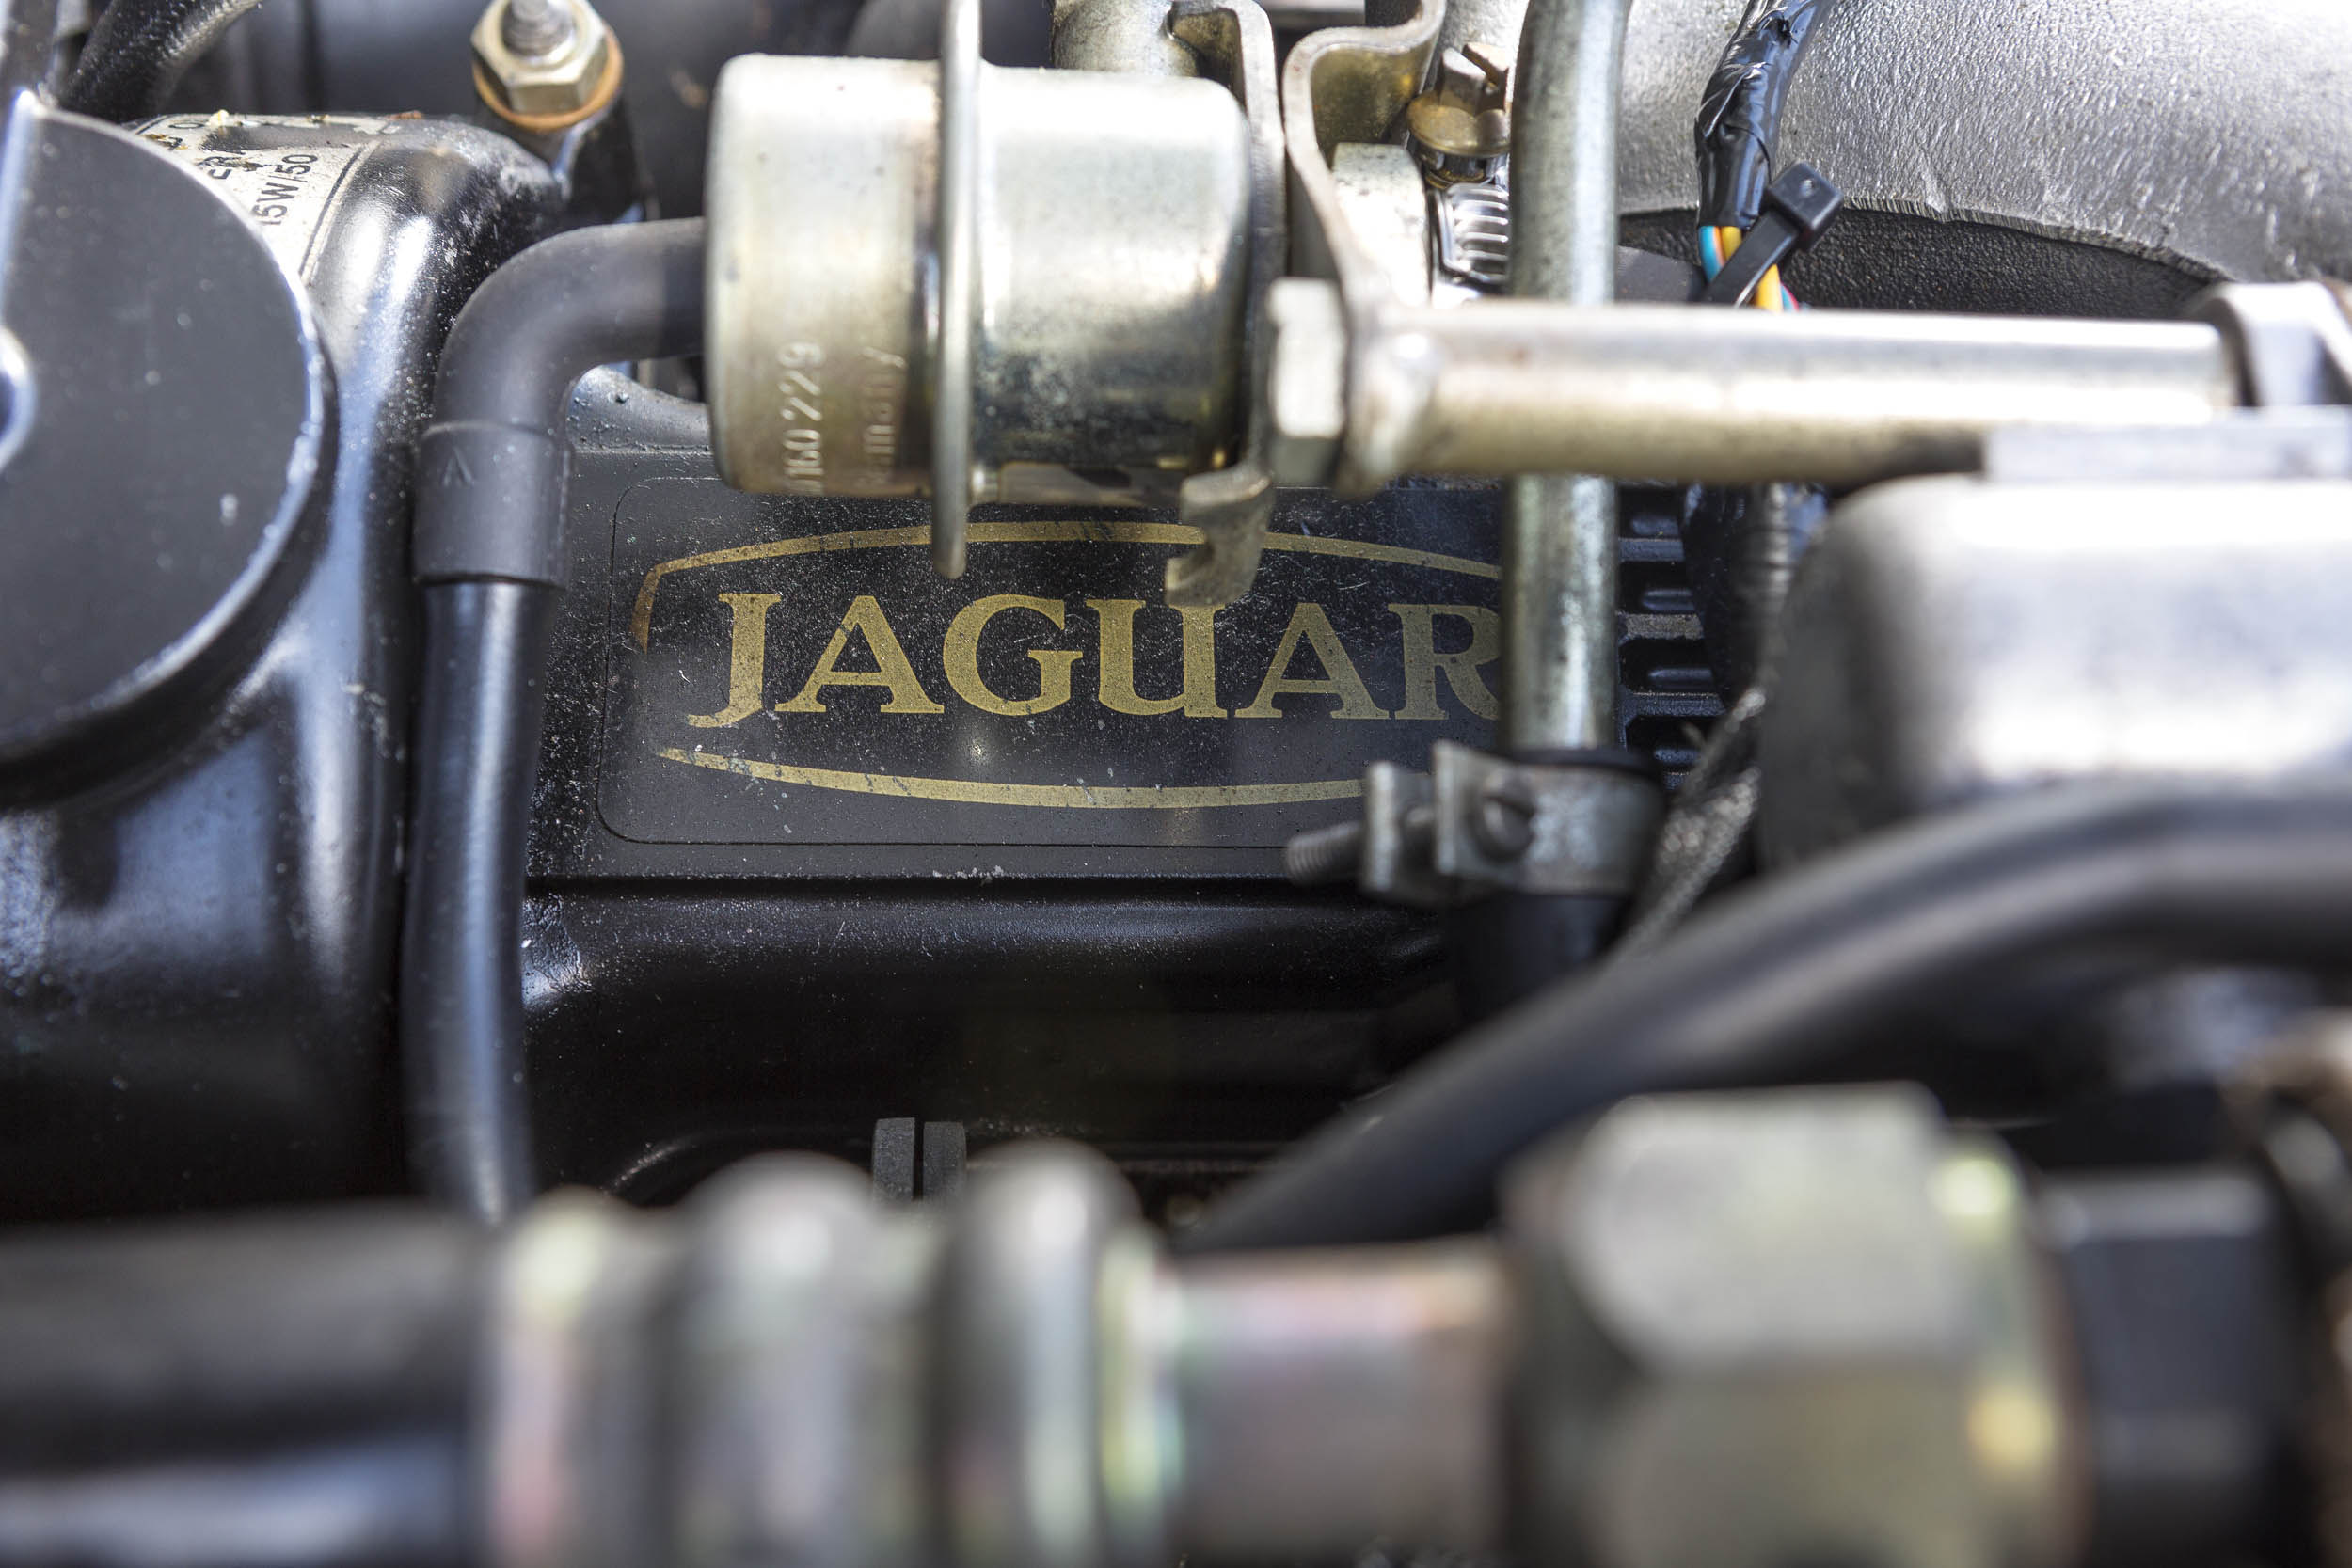 1984 Jaguar XJ-S V-12 engine detail